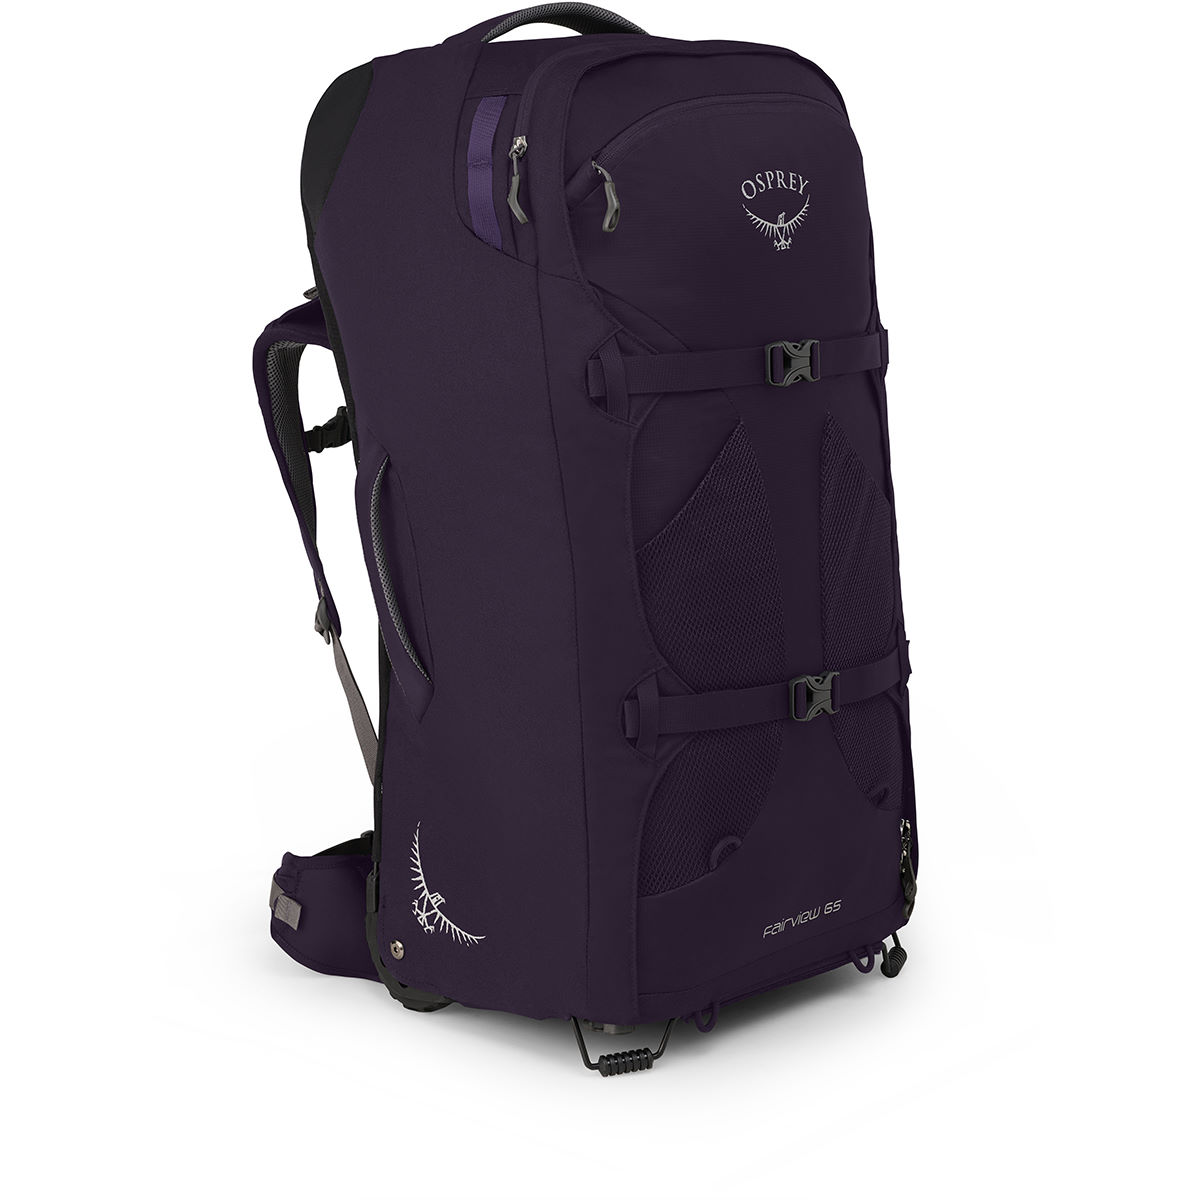 Osprey Osprey Fairview Wheels 65 Bag   Rucksacks